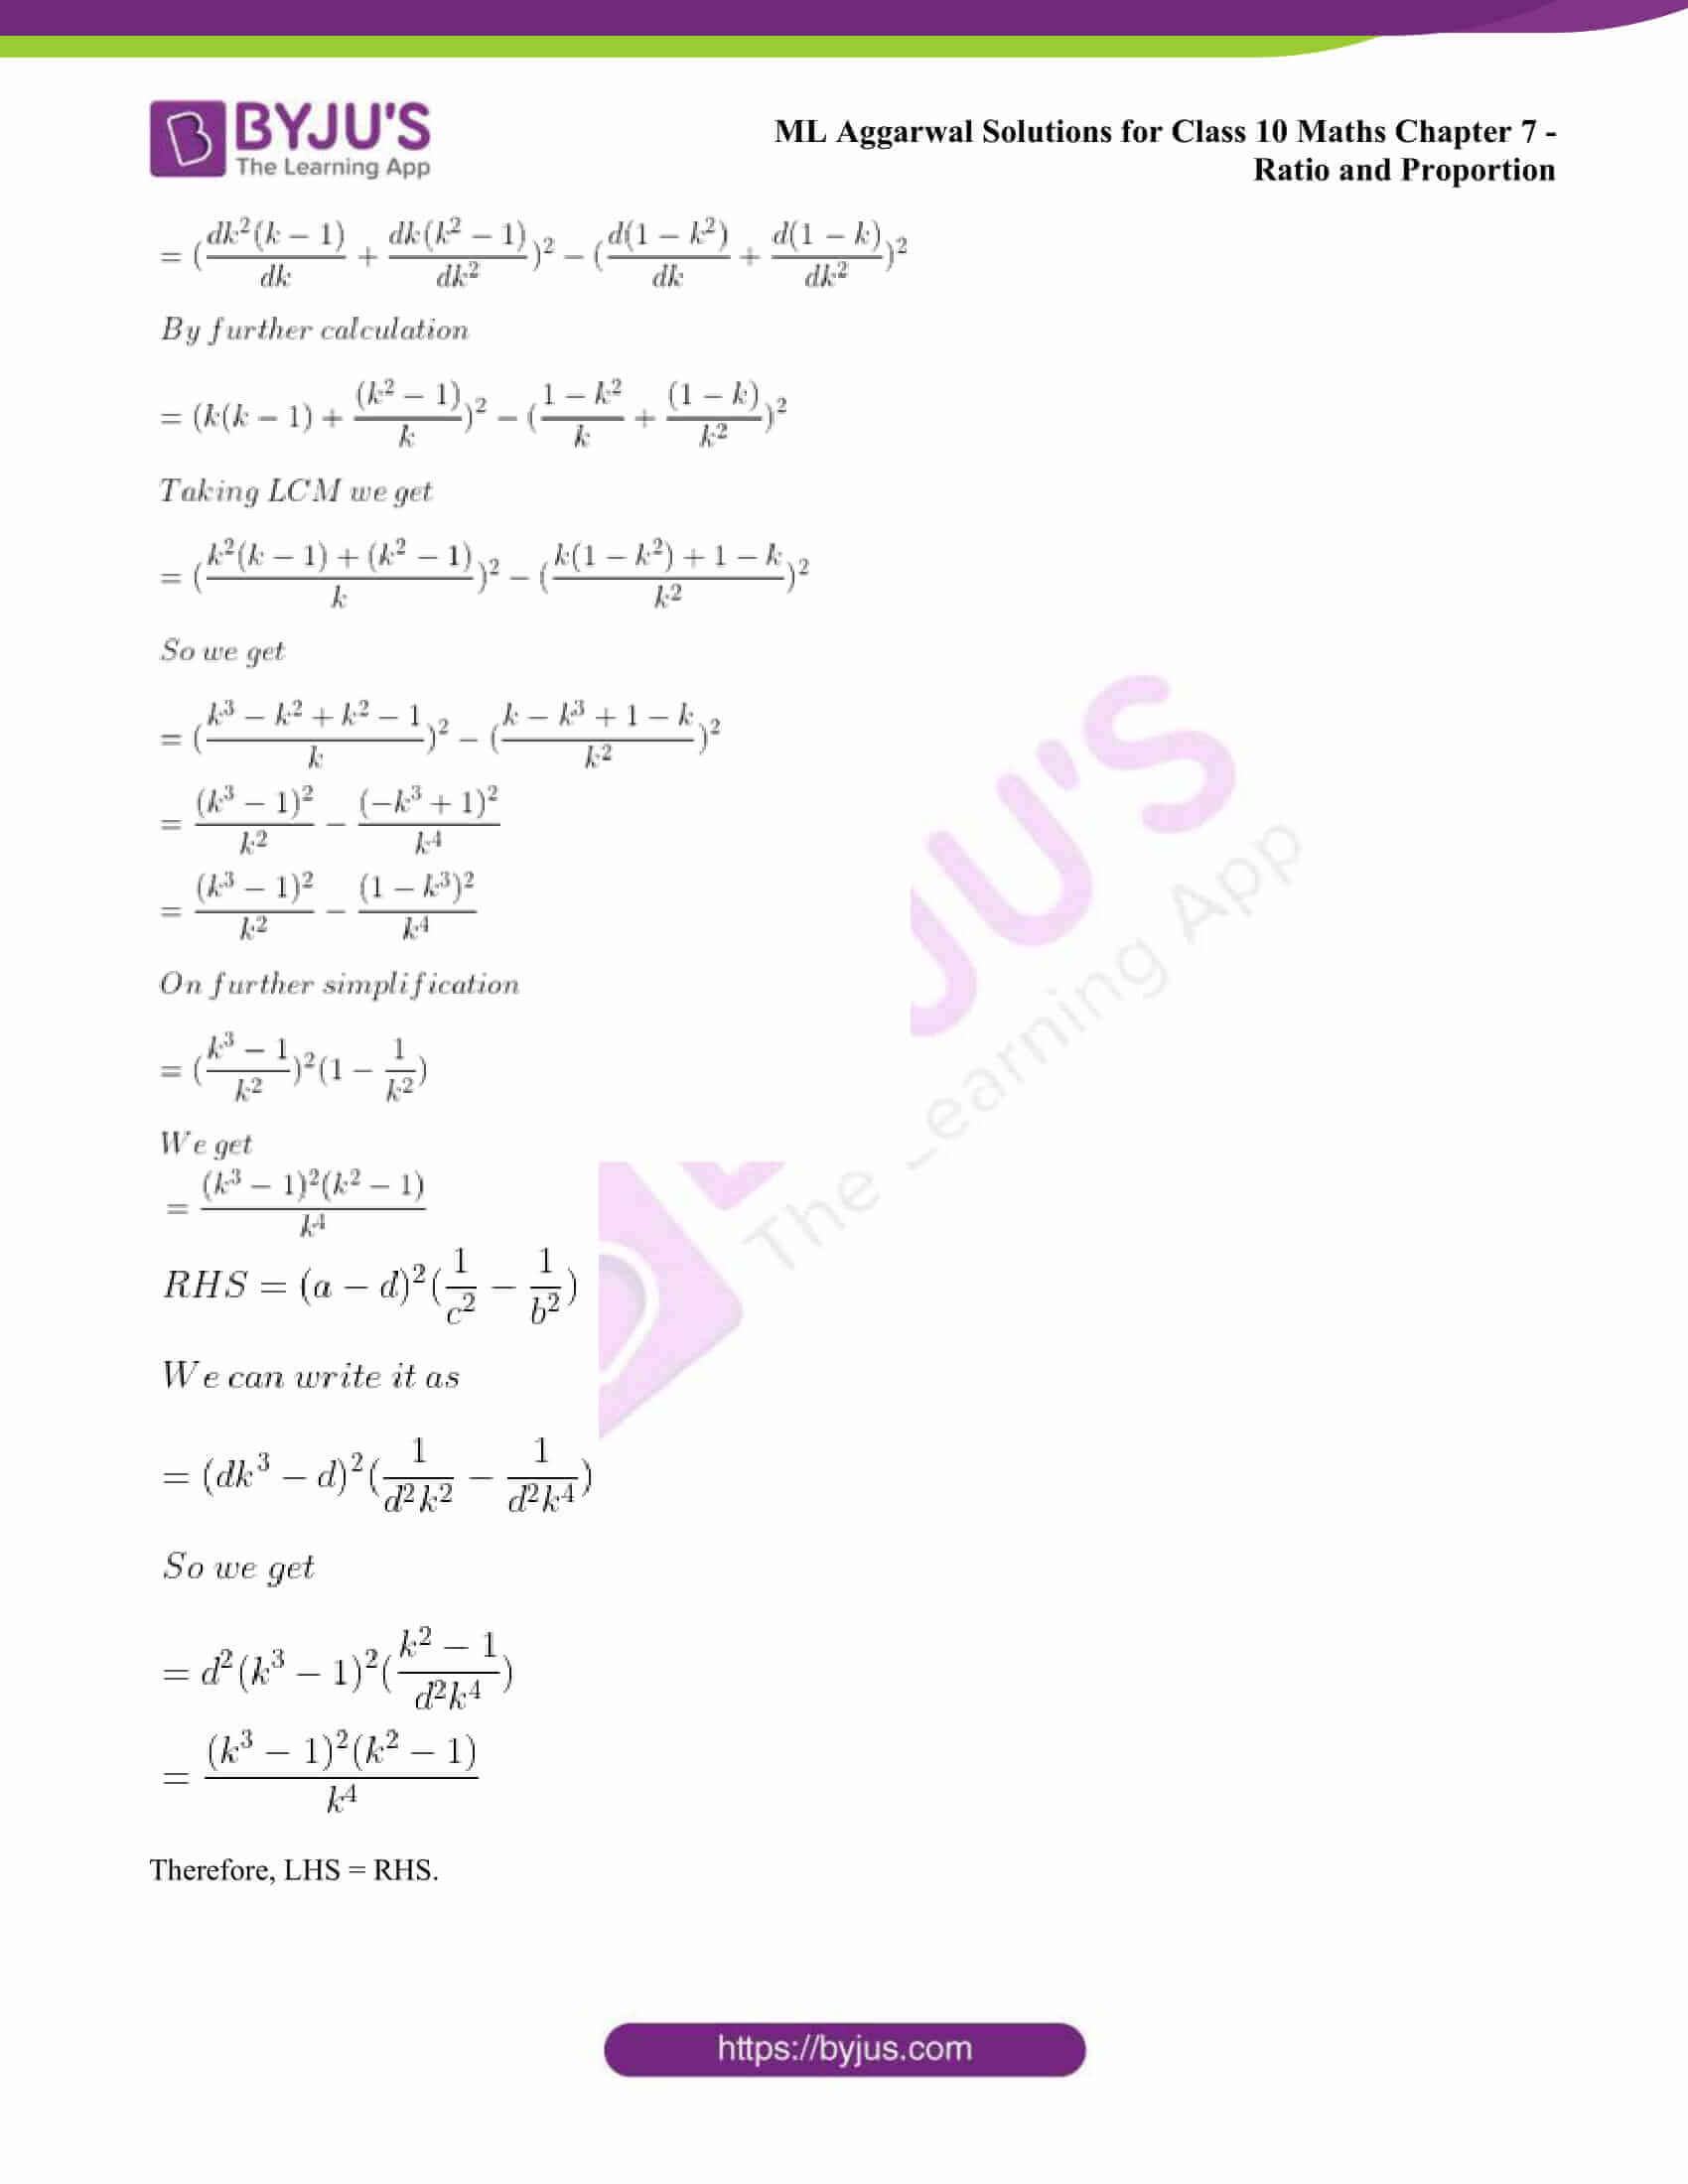 ml aggarwal solutions class 10 maths chapter 7 45